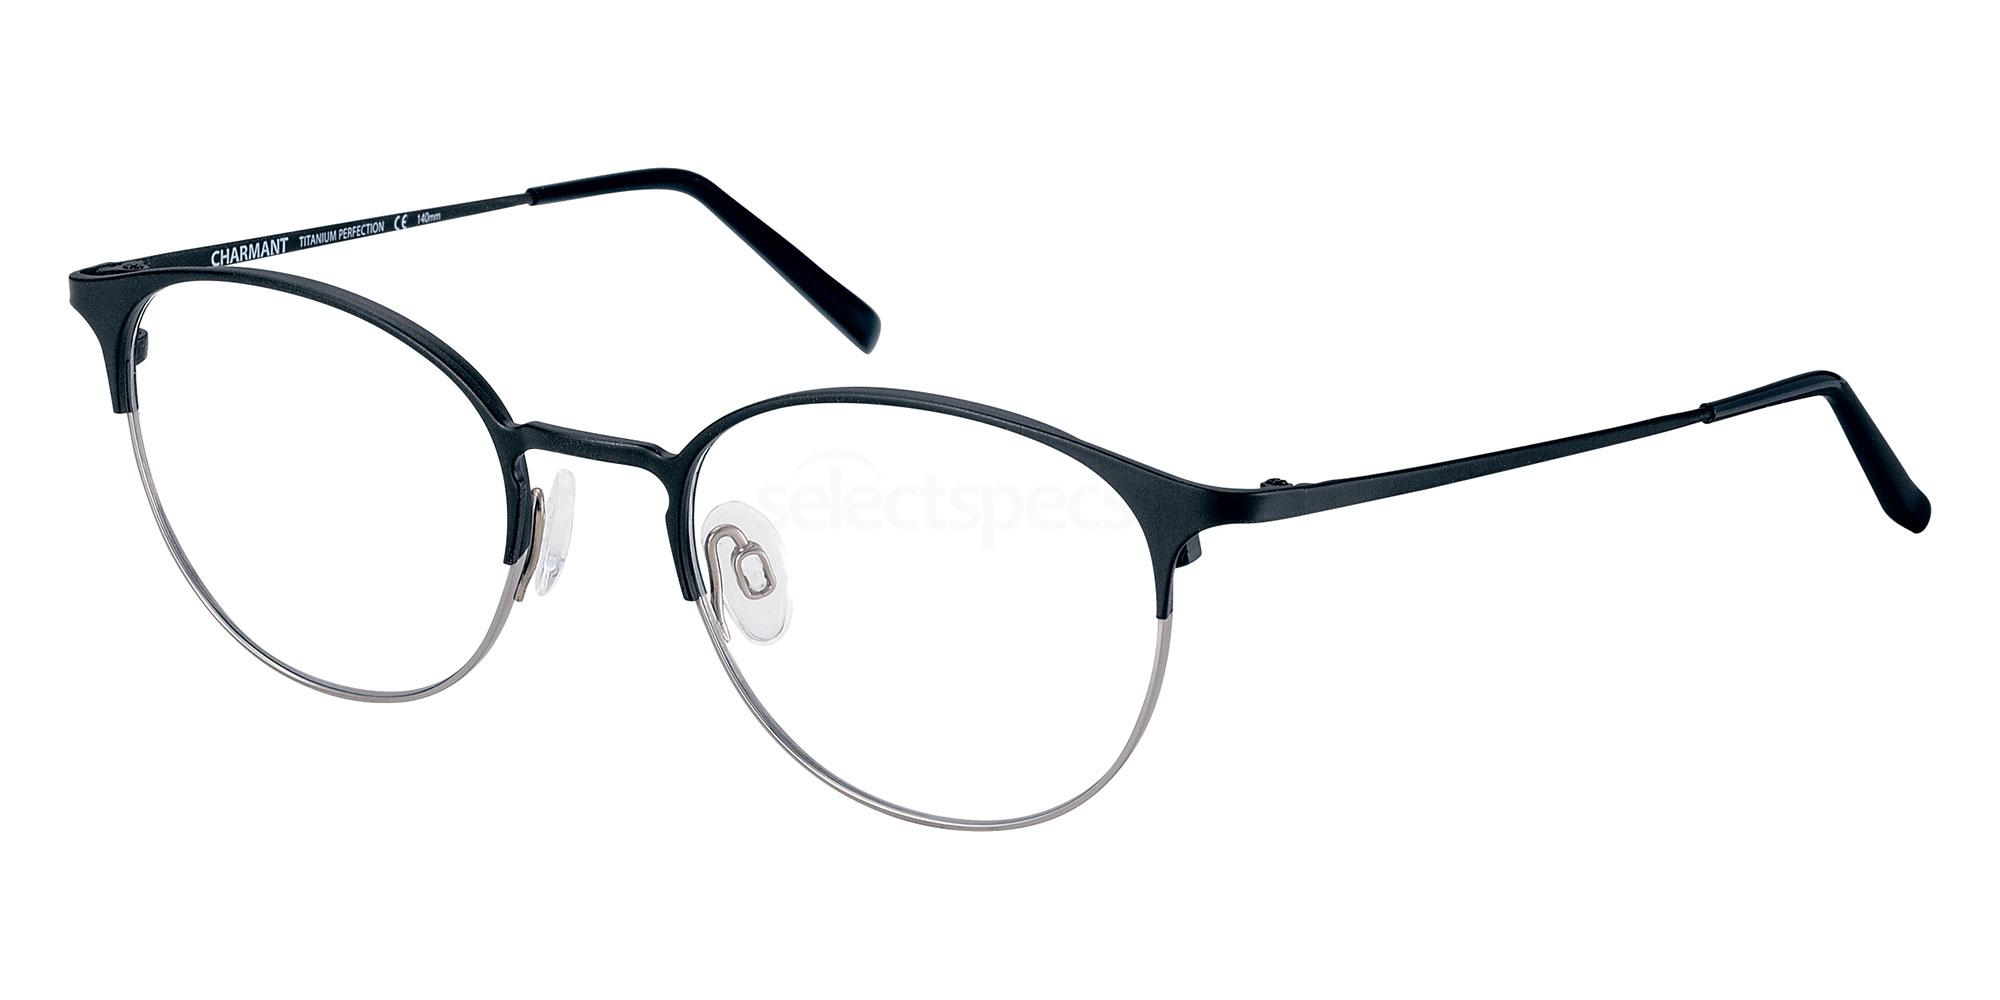 BK CH11465U Glasses, Charmant Titanium Perfection